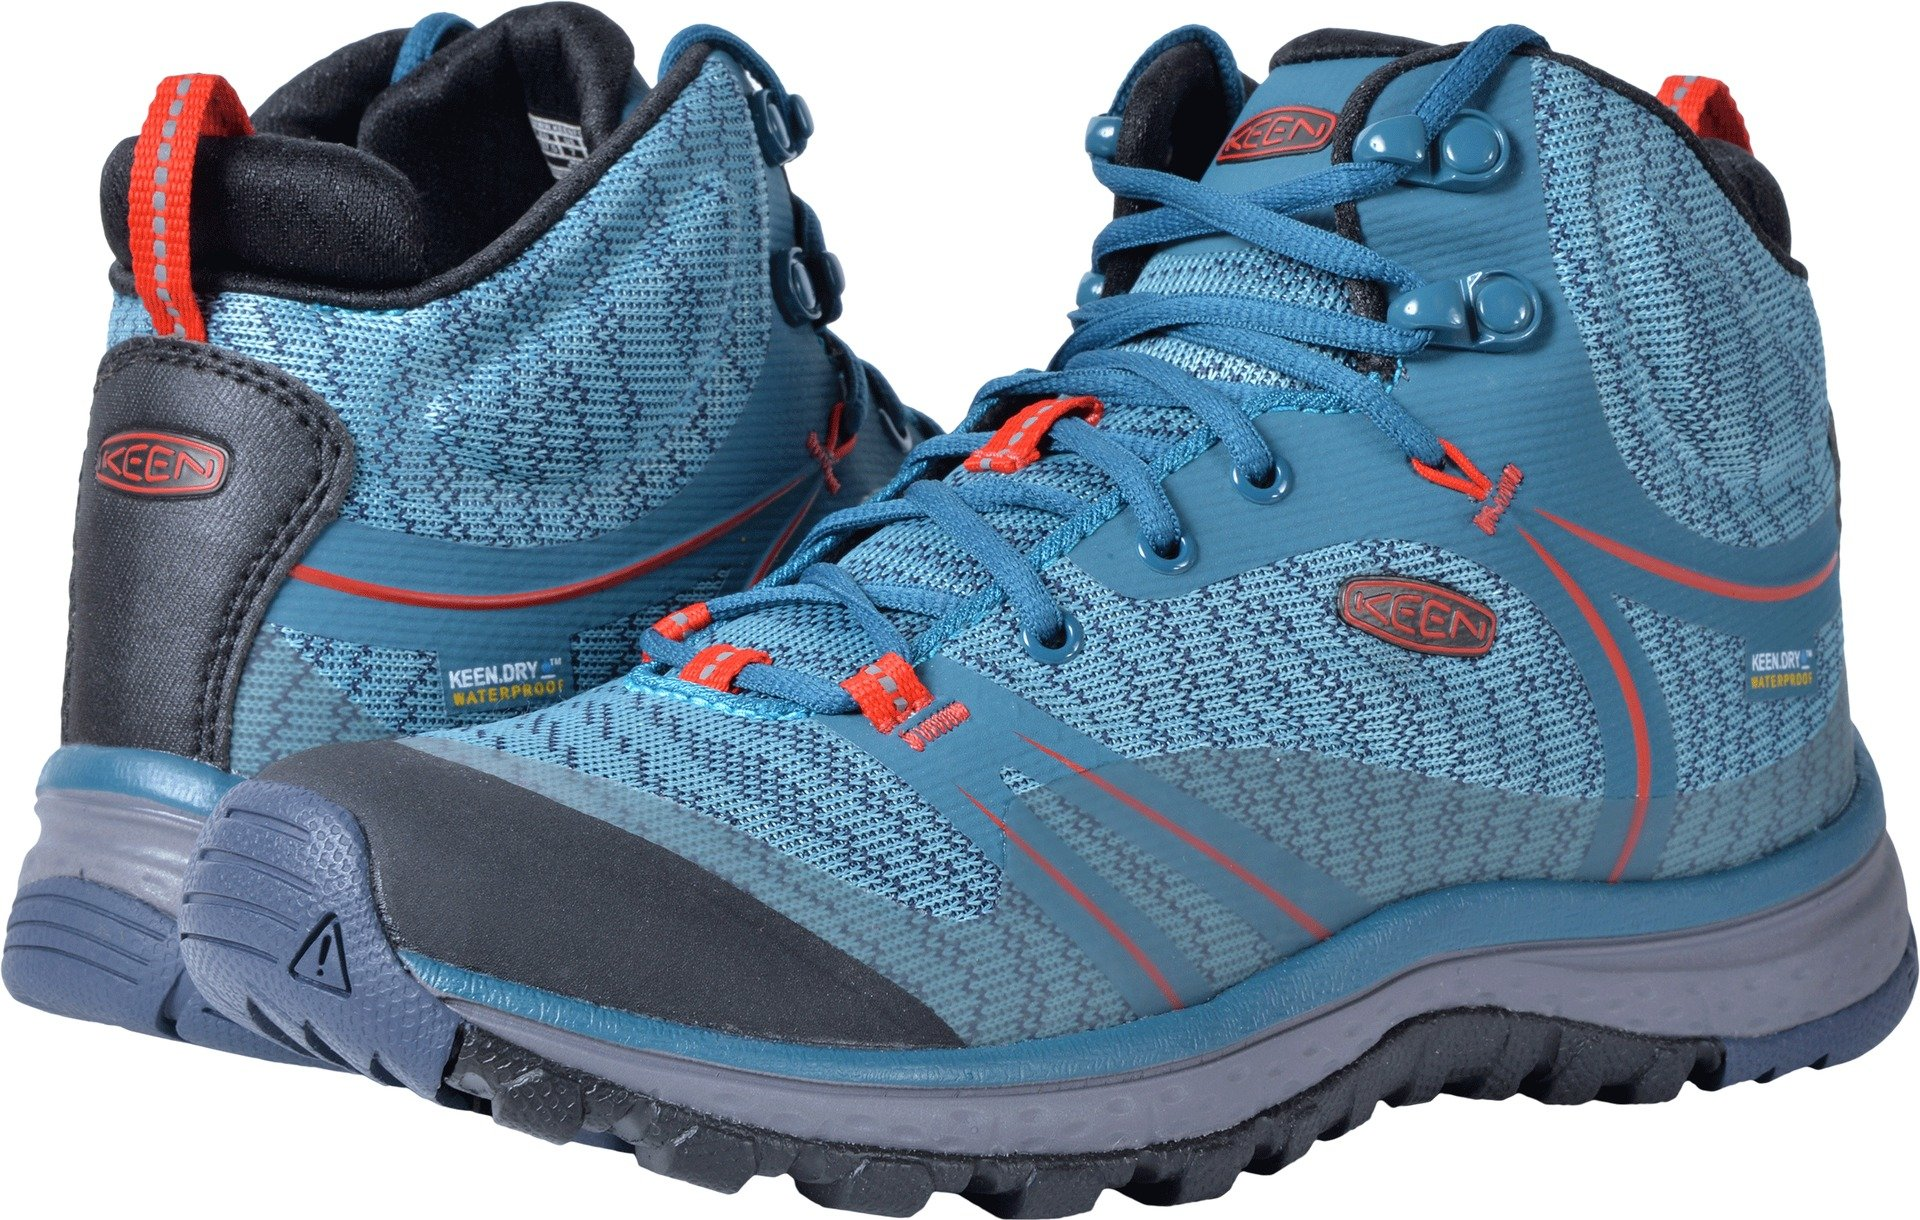 KEEN Women's Terradora Mid WP-w Hiking Shoe, Blue Coral/Fiery Red, 7 M US